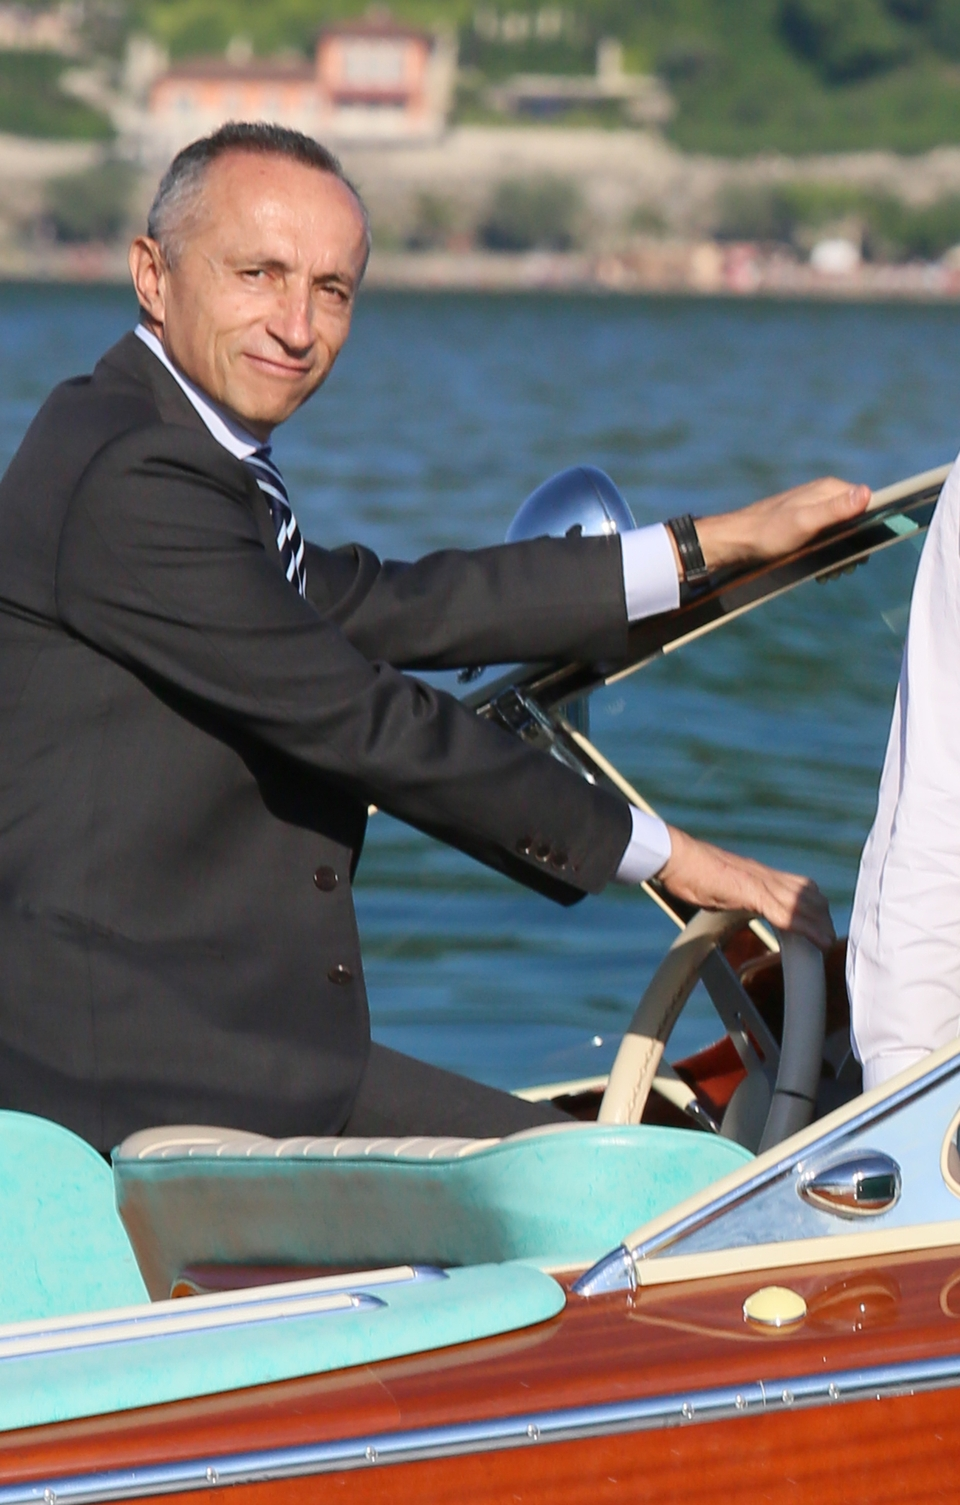 Galassi is the new Chief executive officer of the Ferretti Group